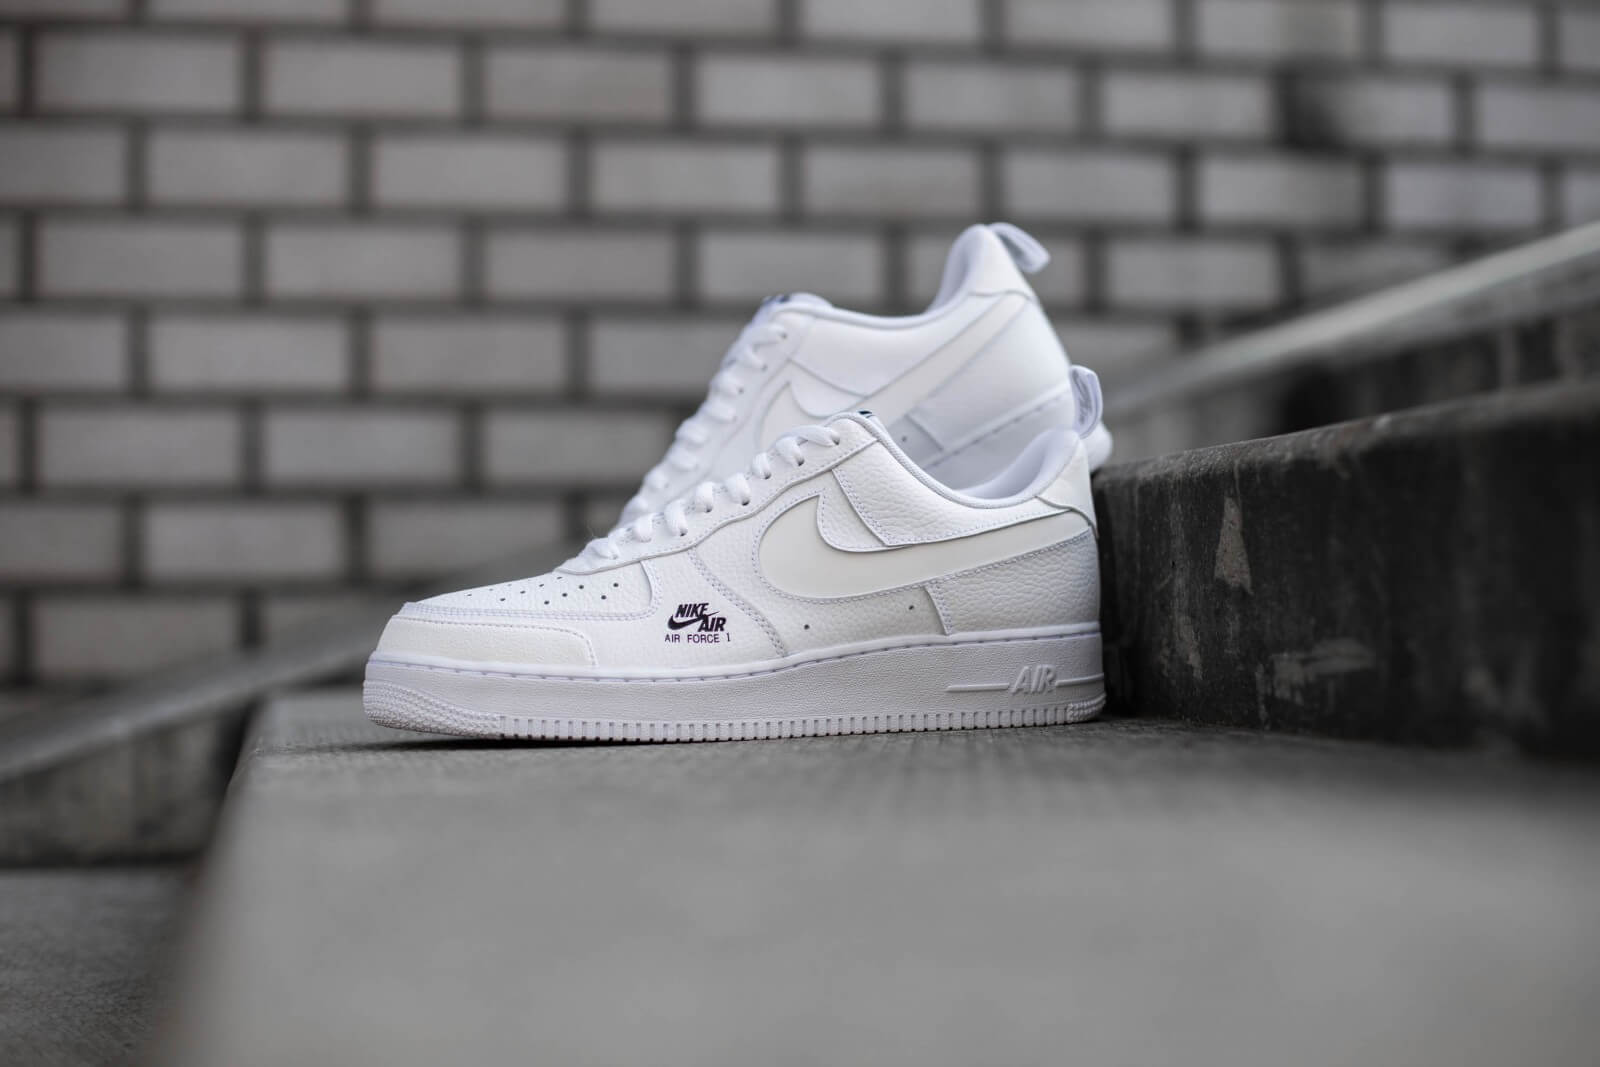 Nike Air Force 1 LV8 Utility White/Grey Fog - CV3039-100